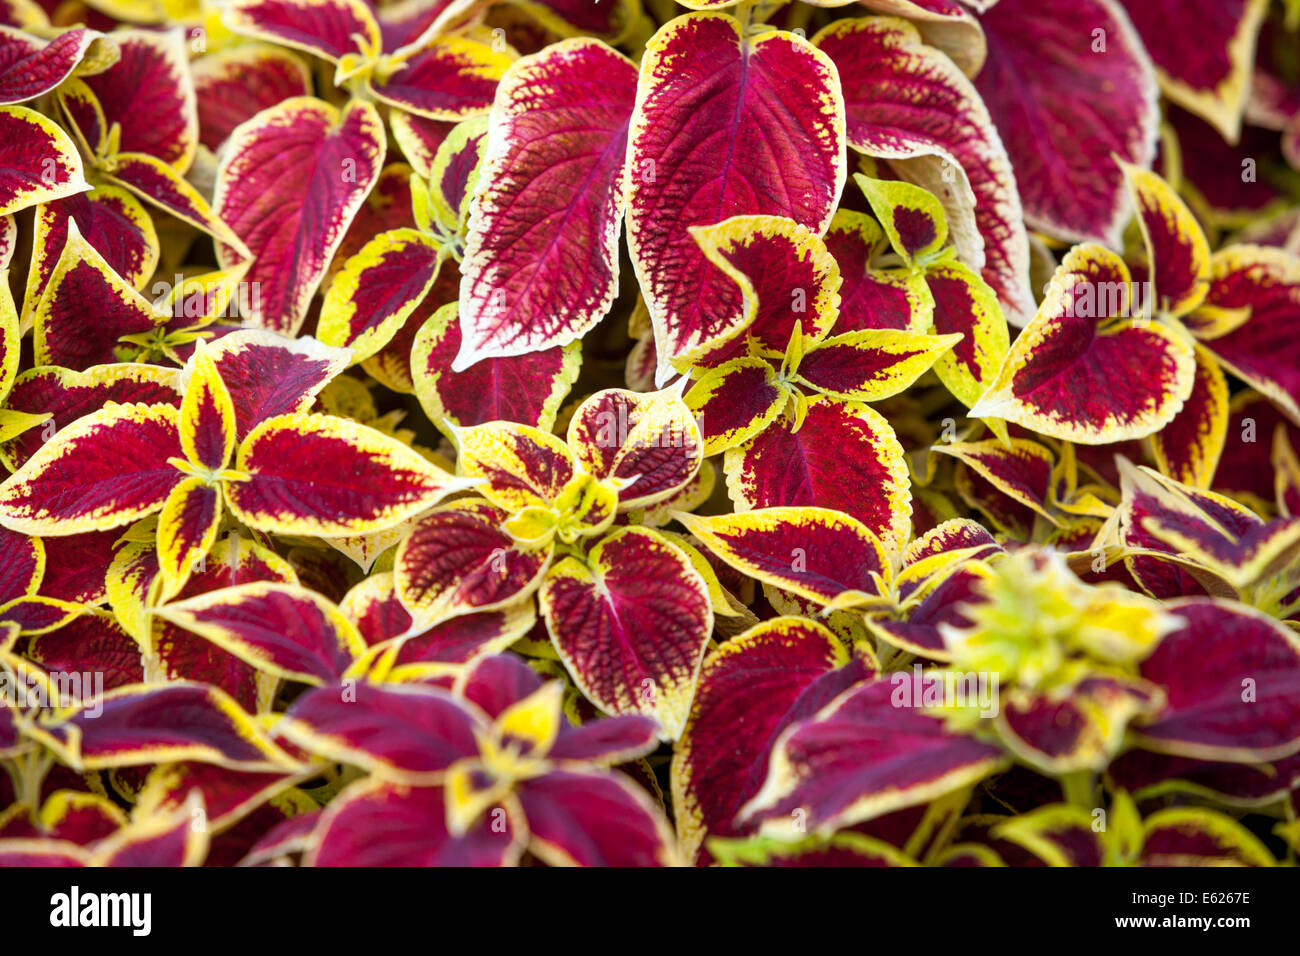 Coleus flower stock photos coleus flower stock images alamy colorful flower bed of annual flowers coleus blumel wizard scarlet stock image izmirmasajfo